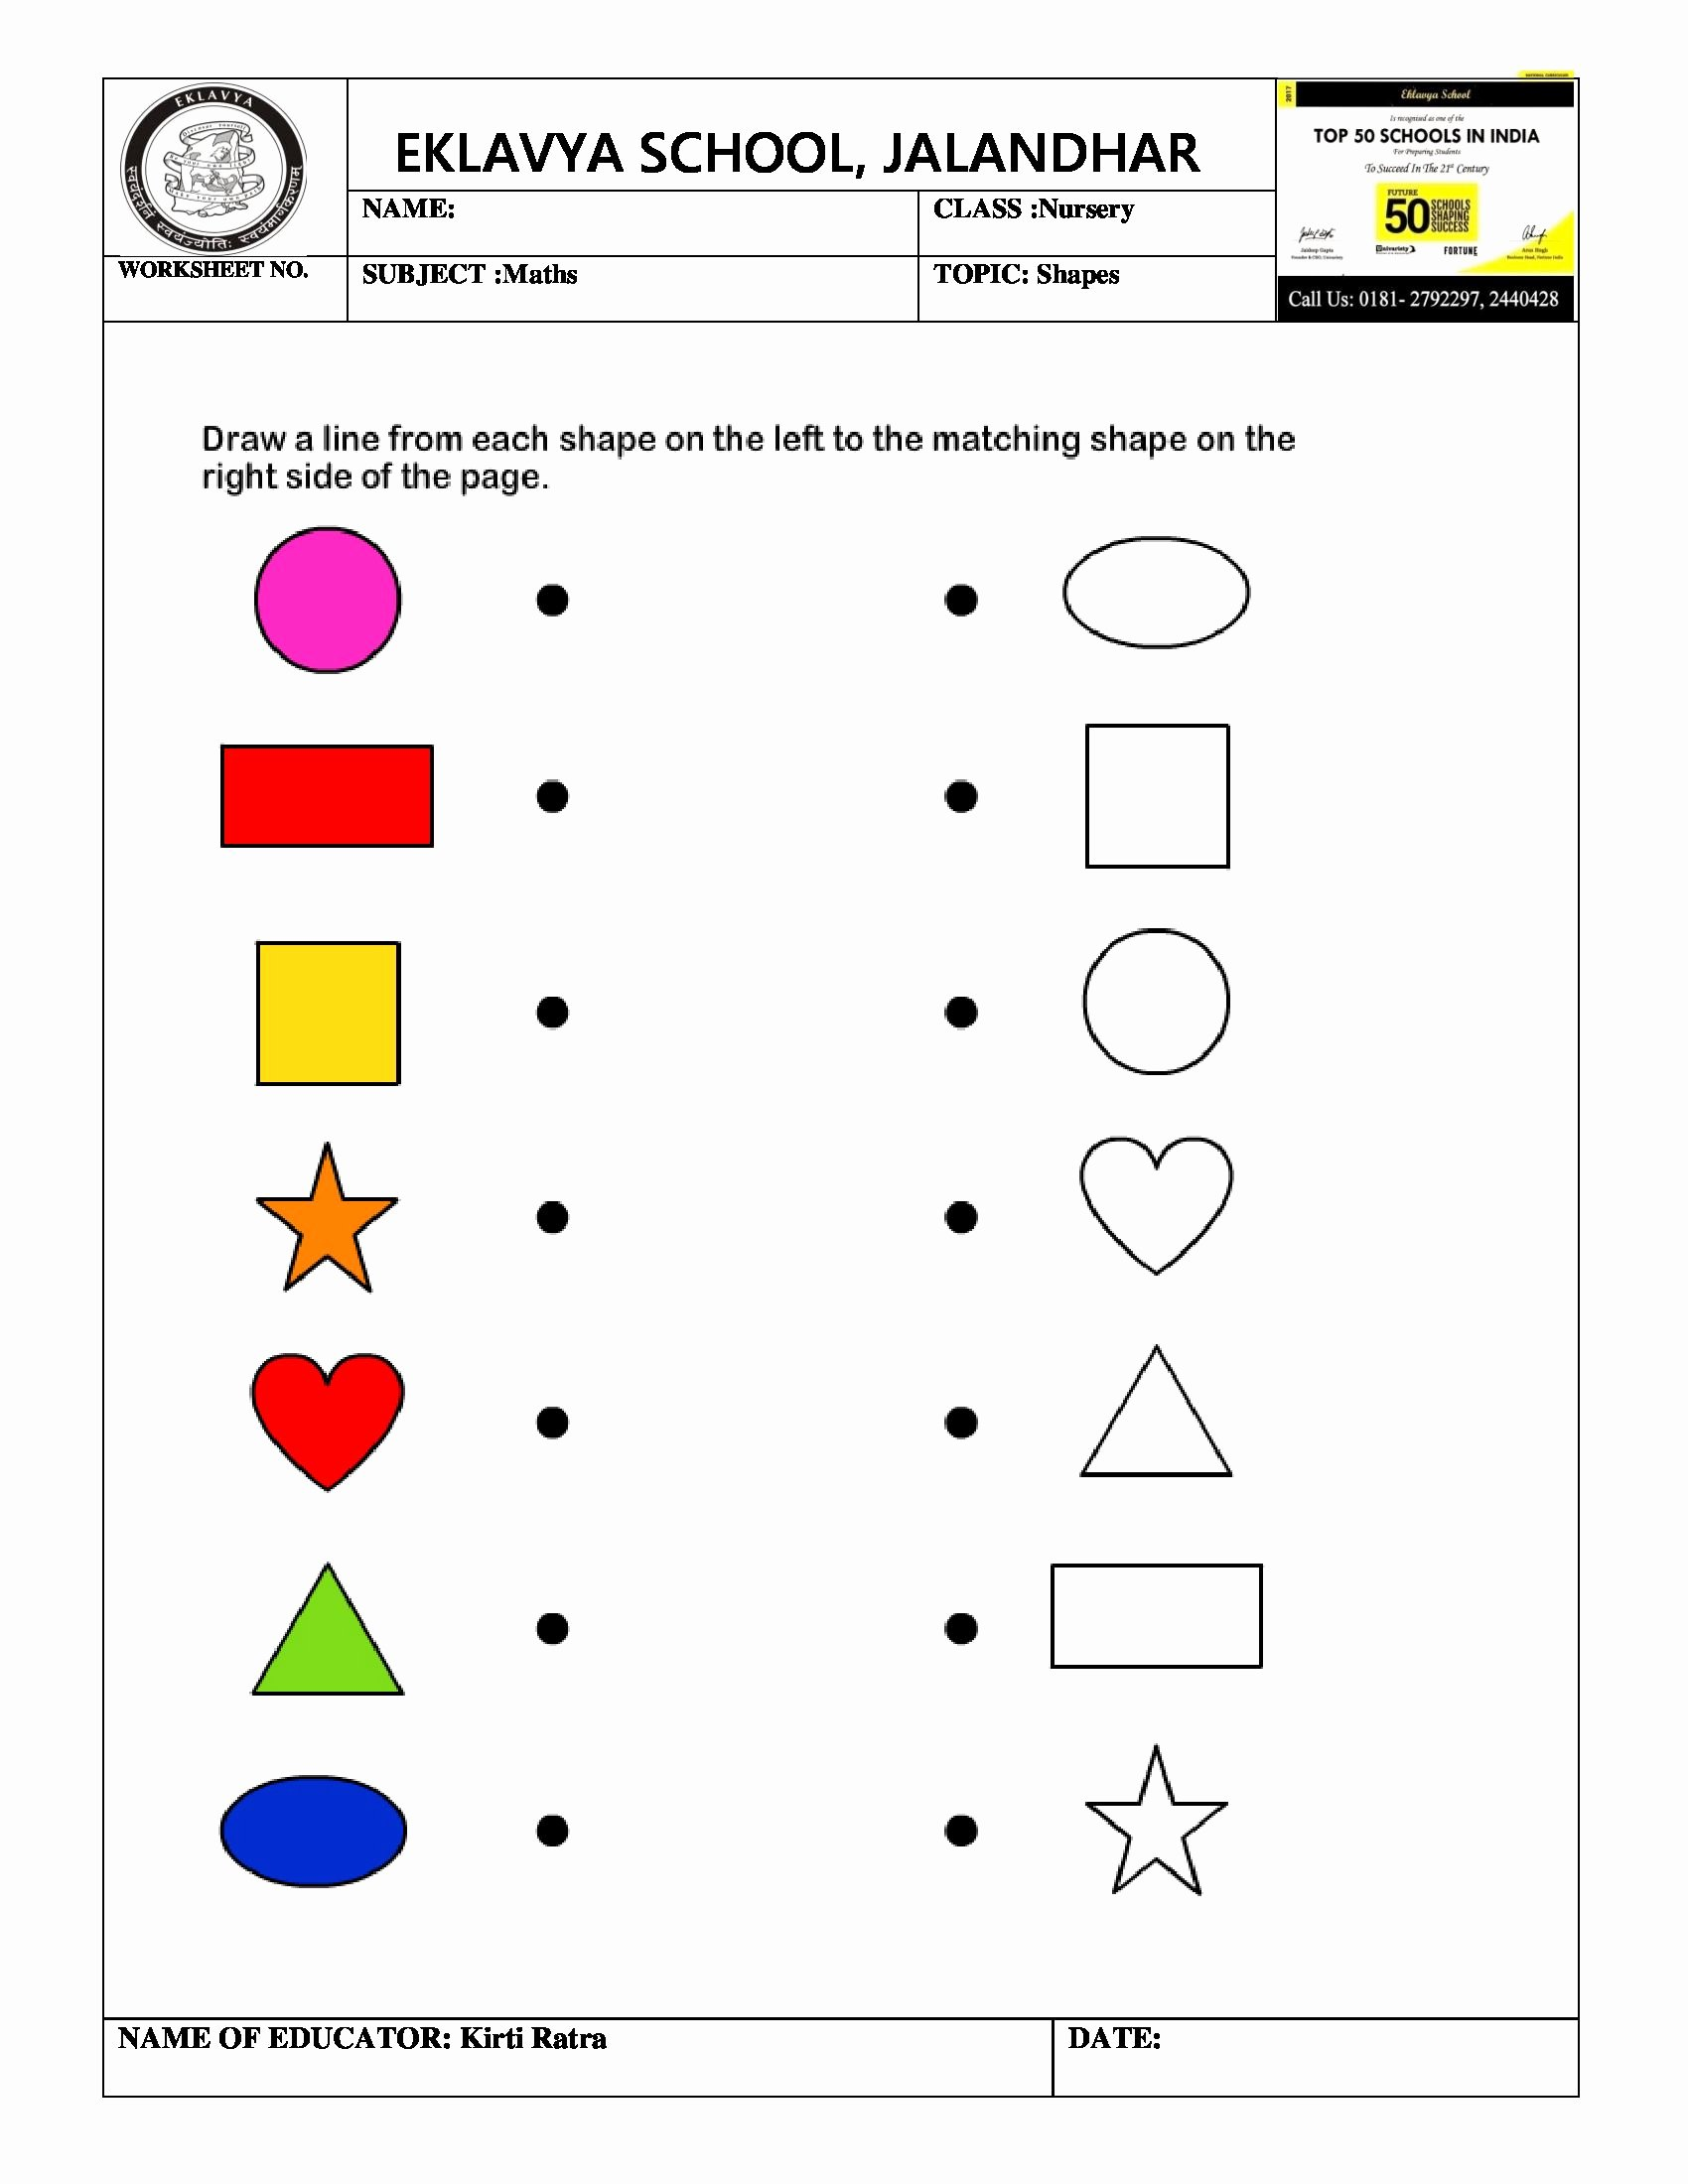 Matching Shapes Worksheets for Preschoolers Awesome 10 Best Matching Shapes Worksheets for Preschool Images On